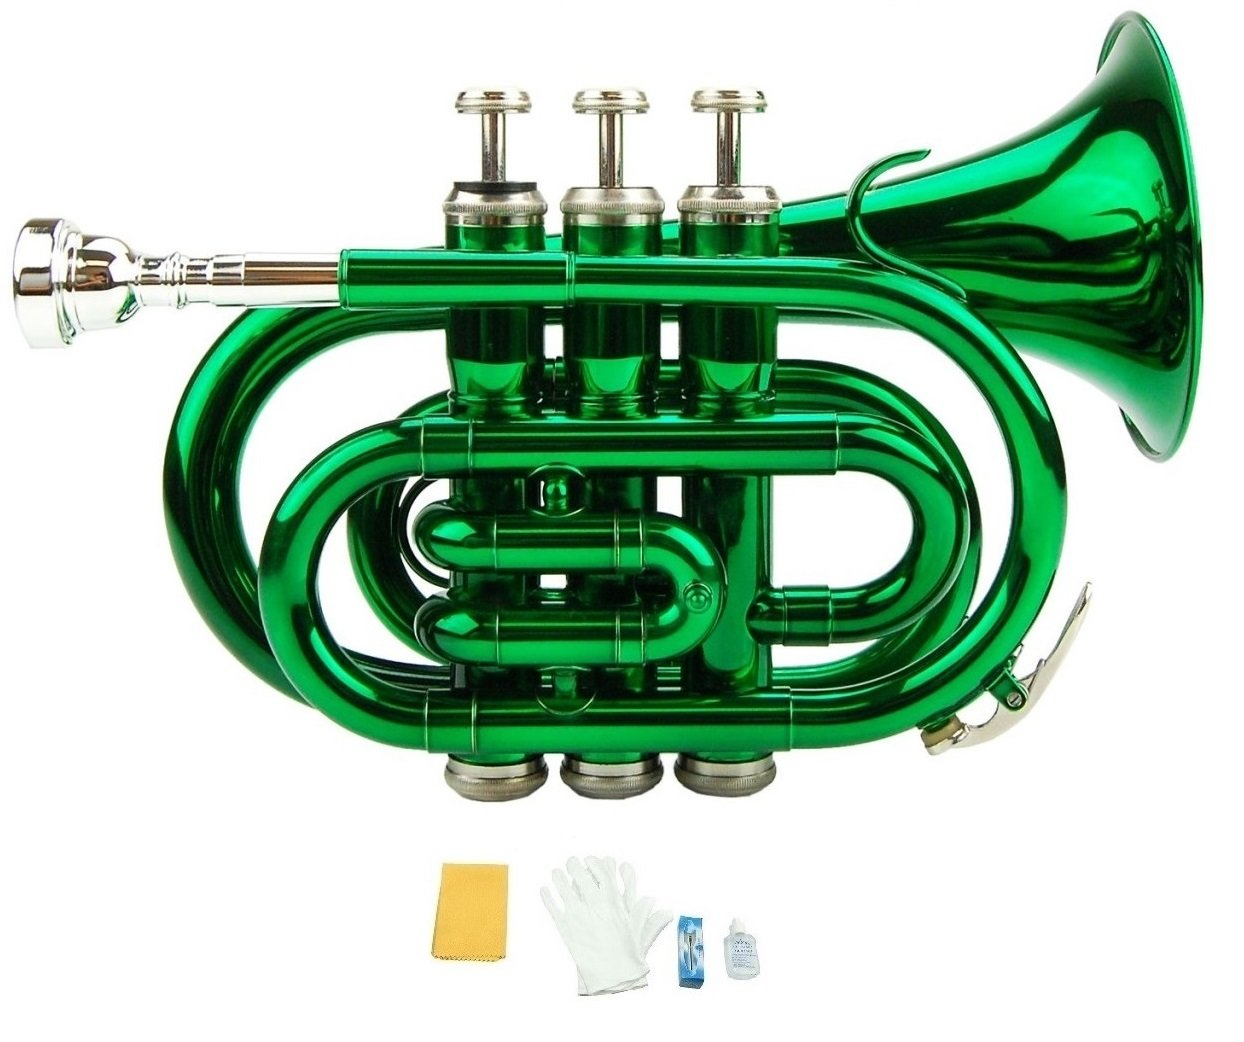 Merano B Flat Green Pocket Trumpet with Case+Mouth Piece;Valve oil;A Pair Of Gloves;Soft Cleaning Cloth